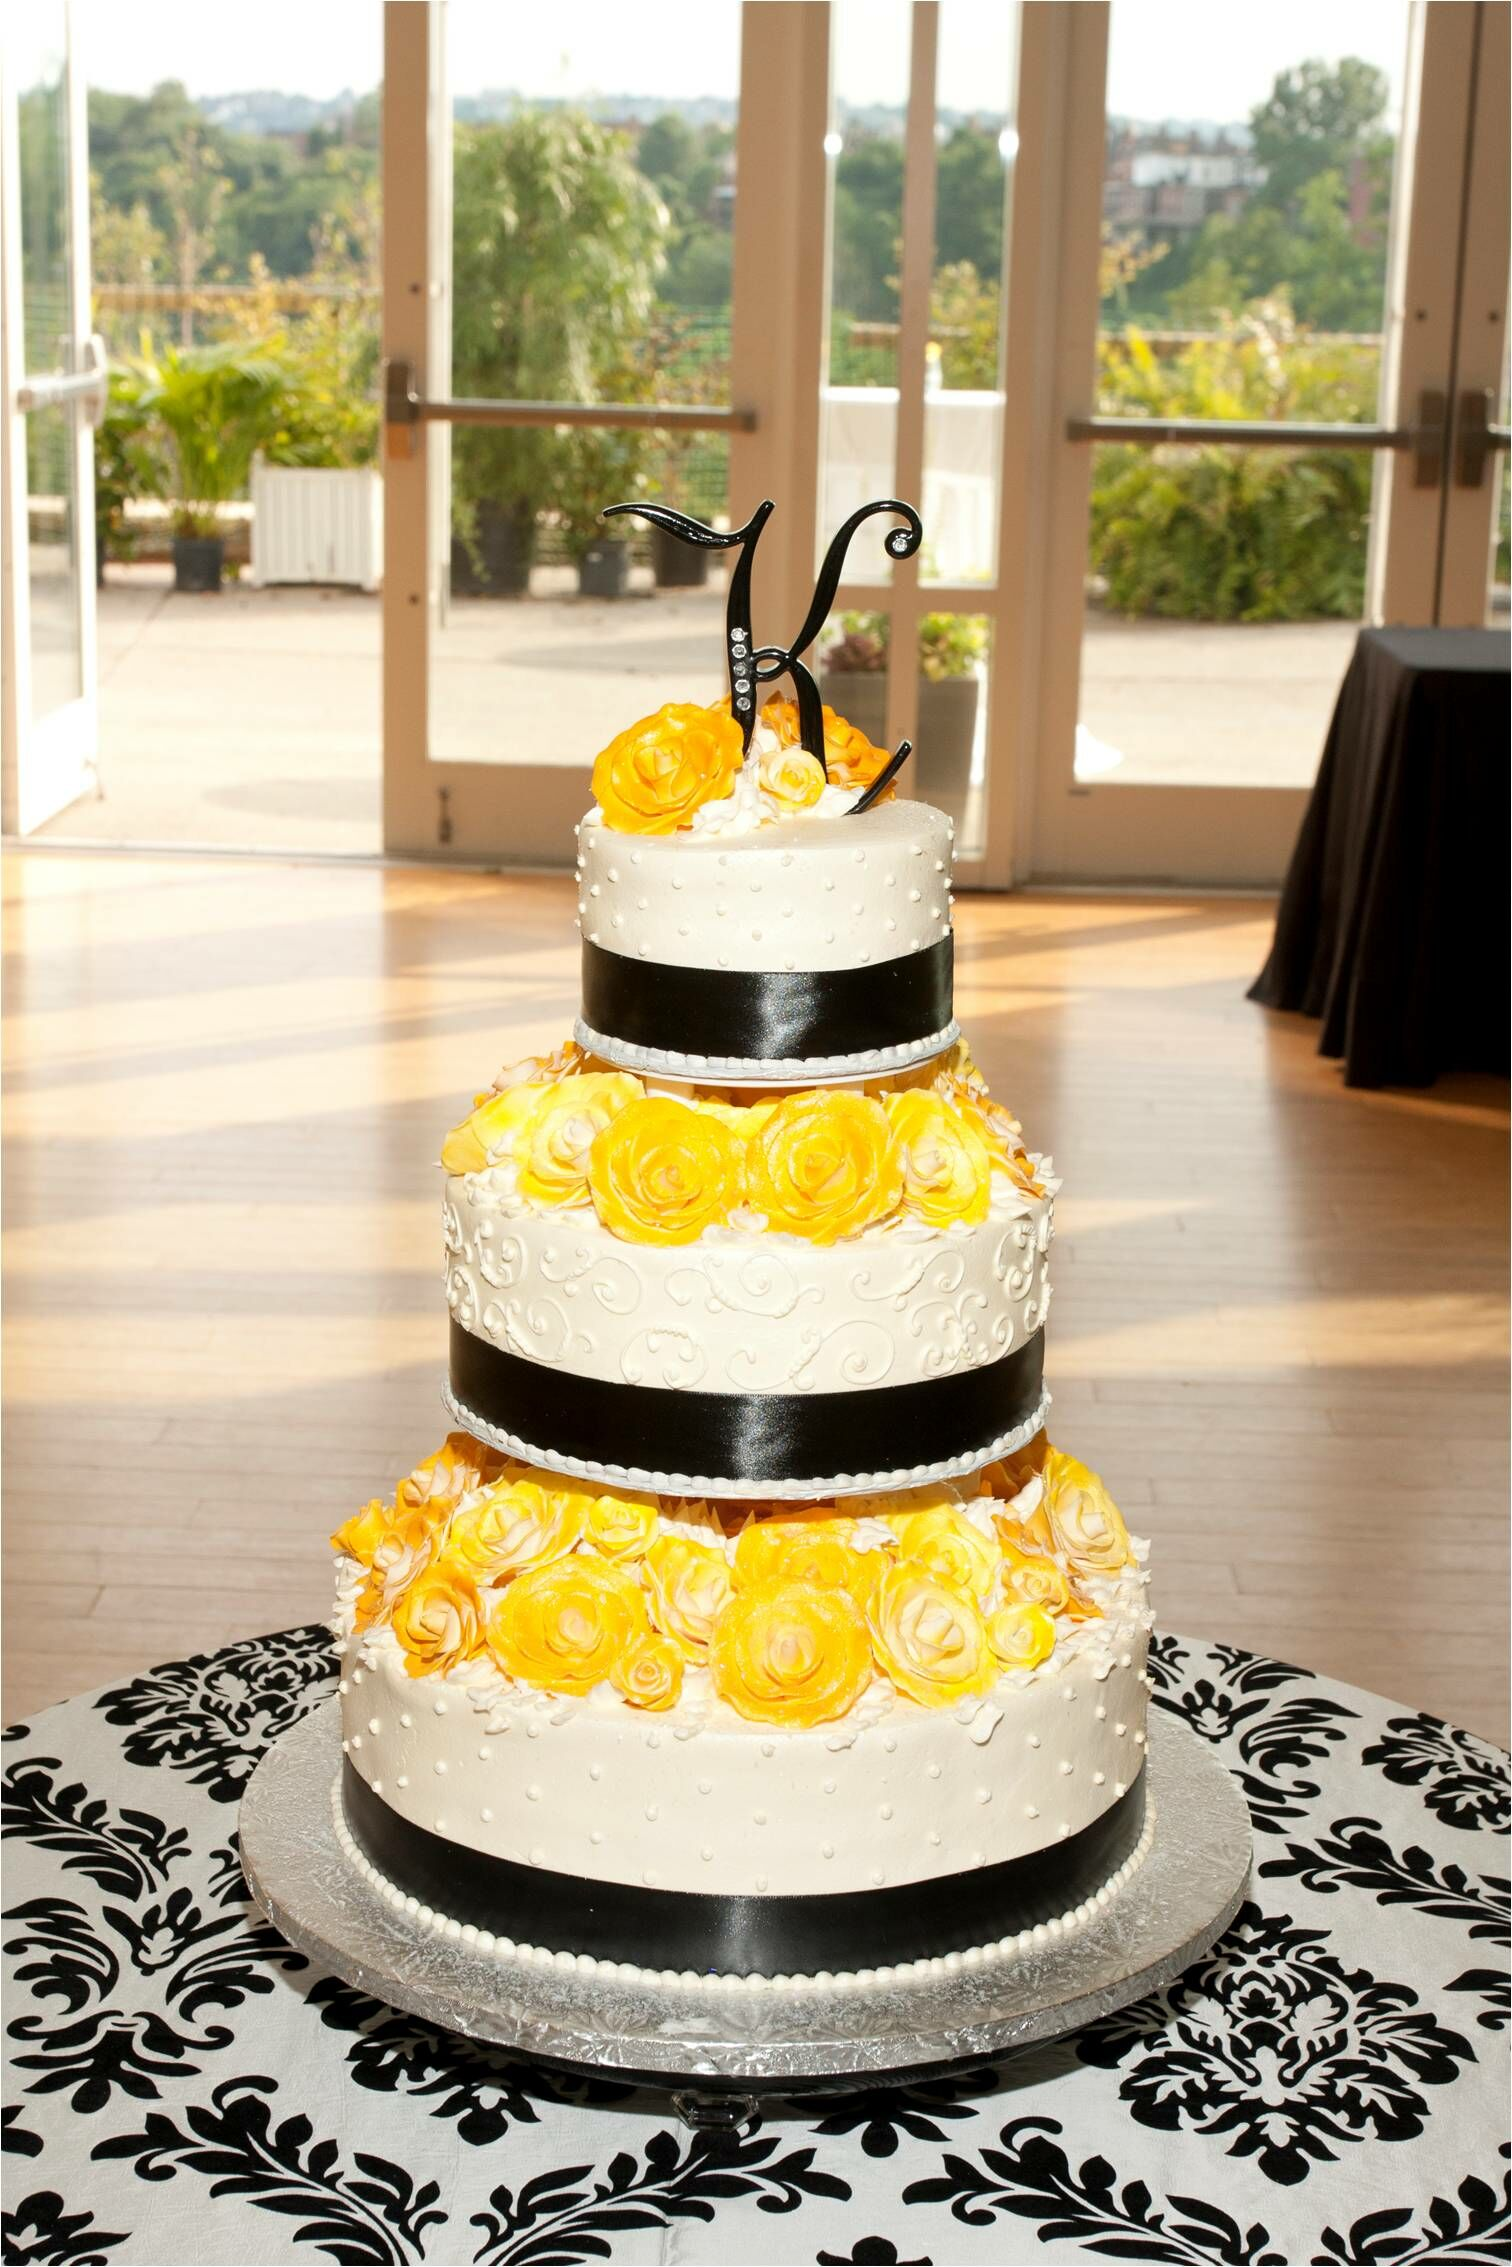 Wedding Cake Bakeries in Pittsburgh, PA - The Knot